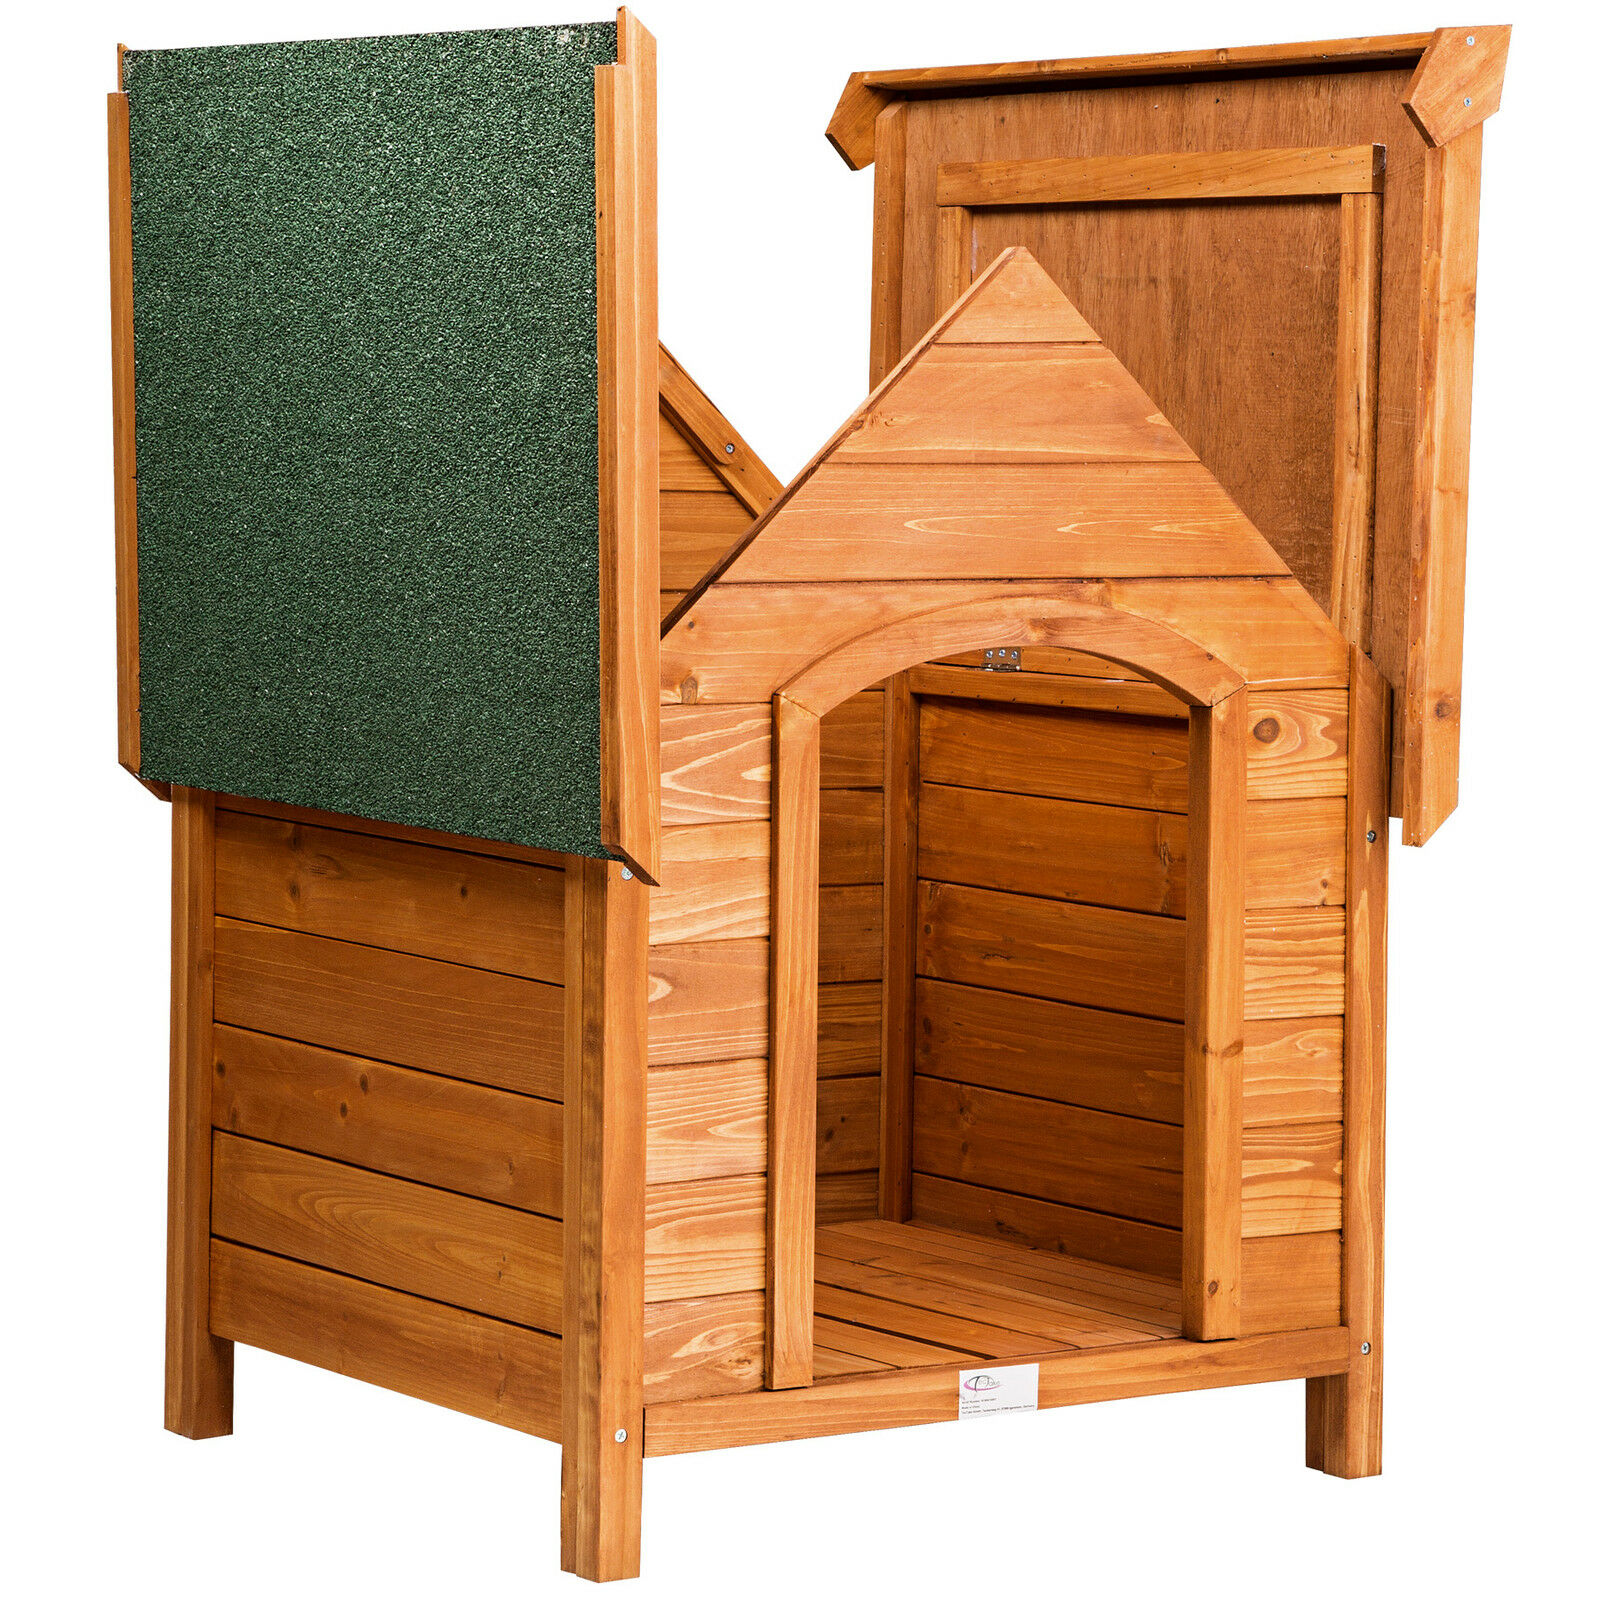 niche villa pour chiens xxl en bois massif chenil maison chien toit inclin eur 59 90. Black Bedroom Furniture Sets. Home Design Ideas